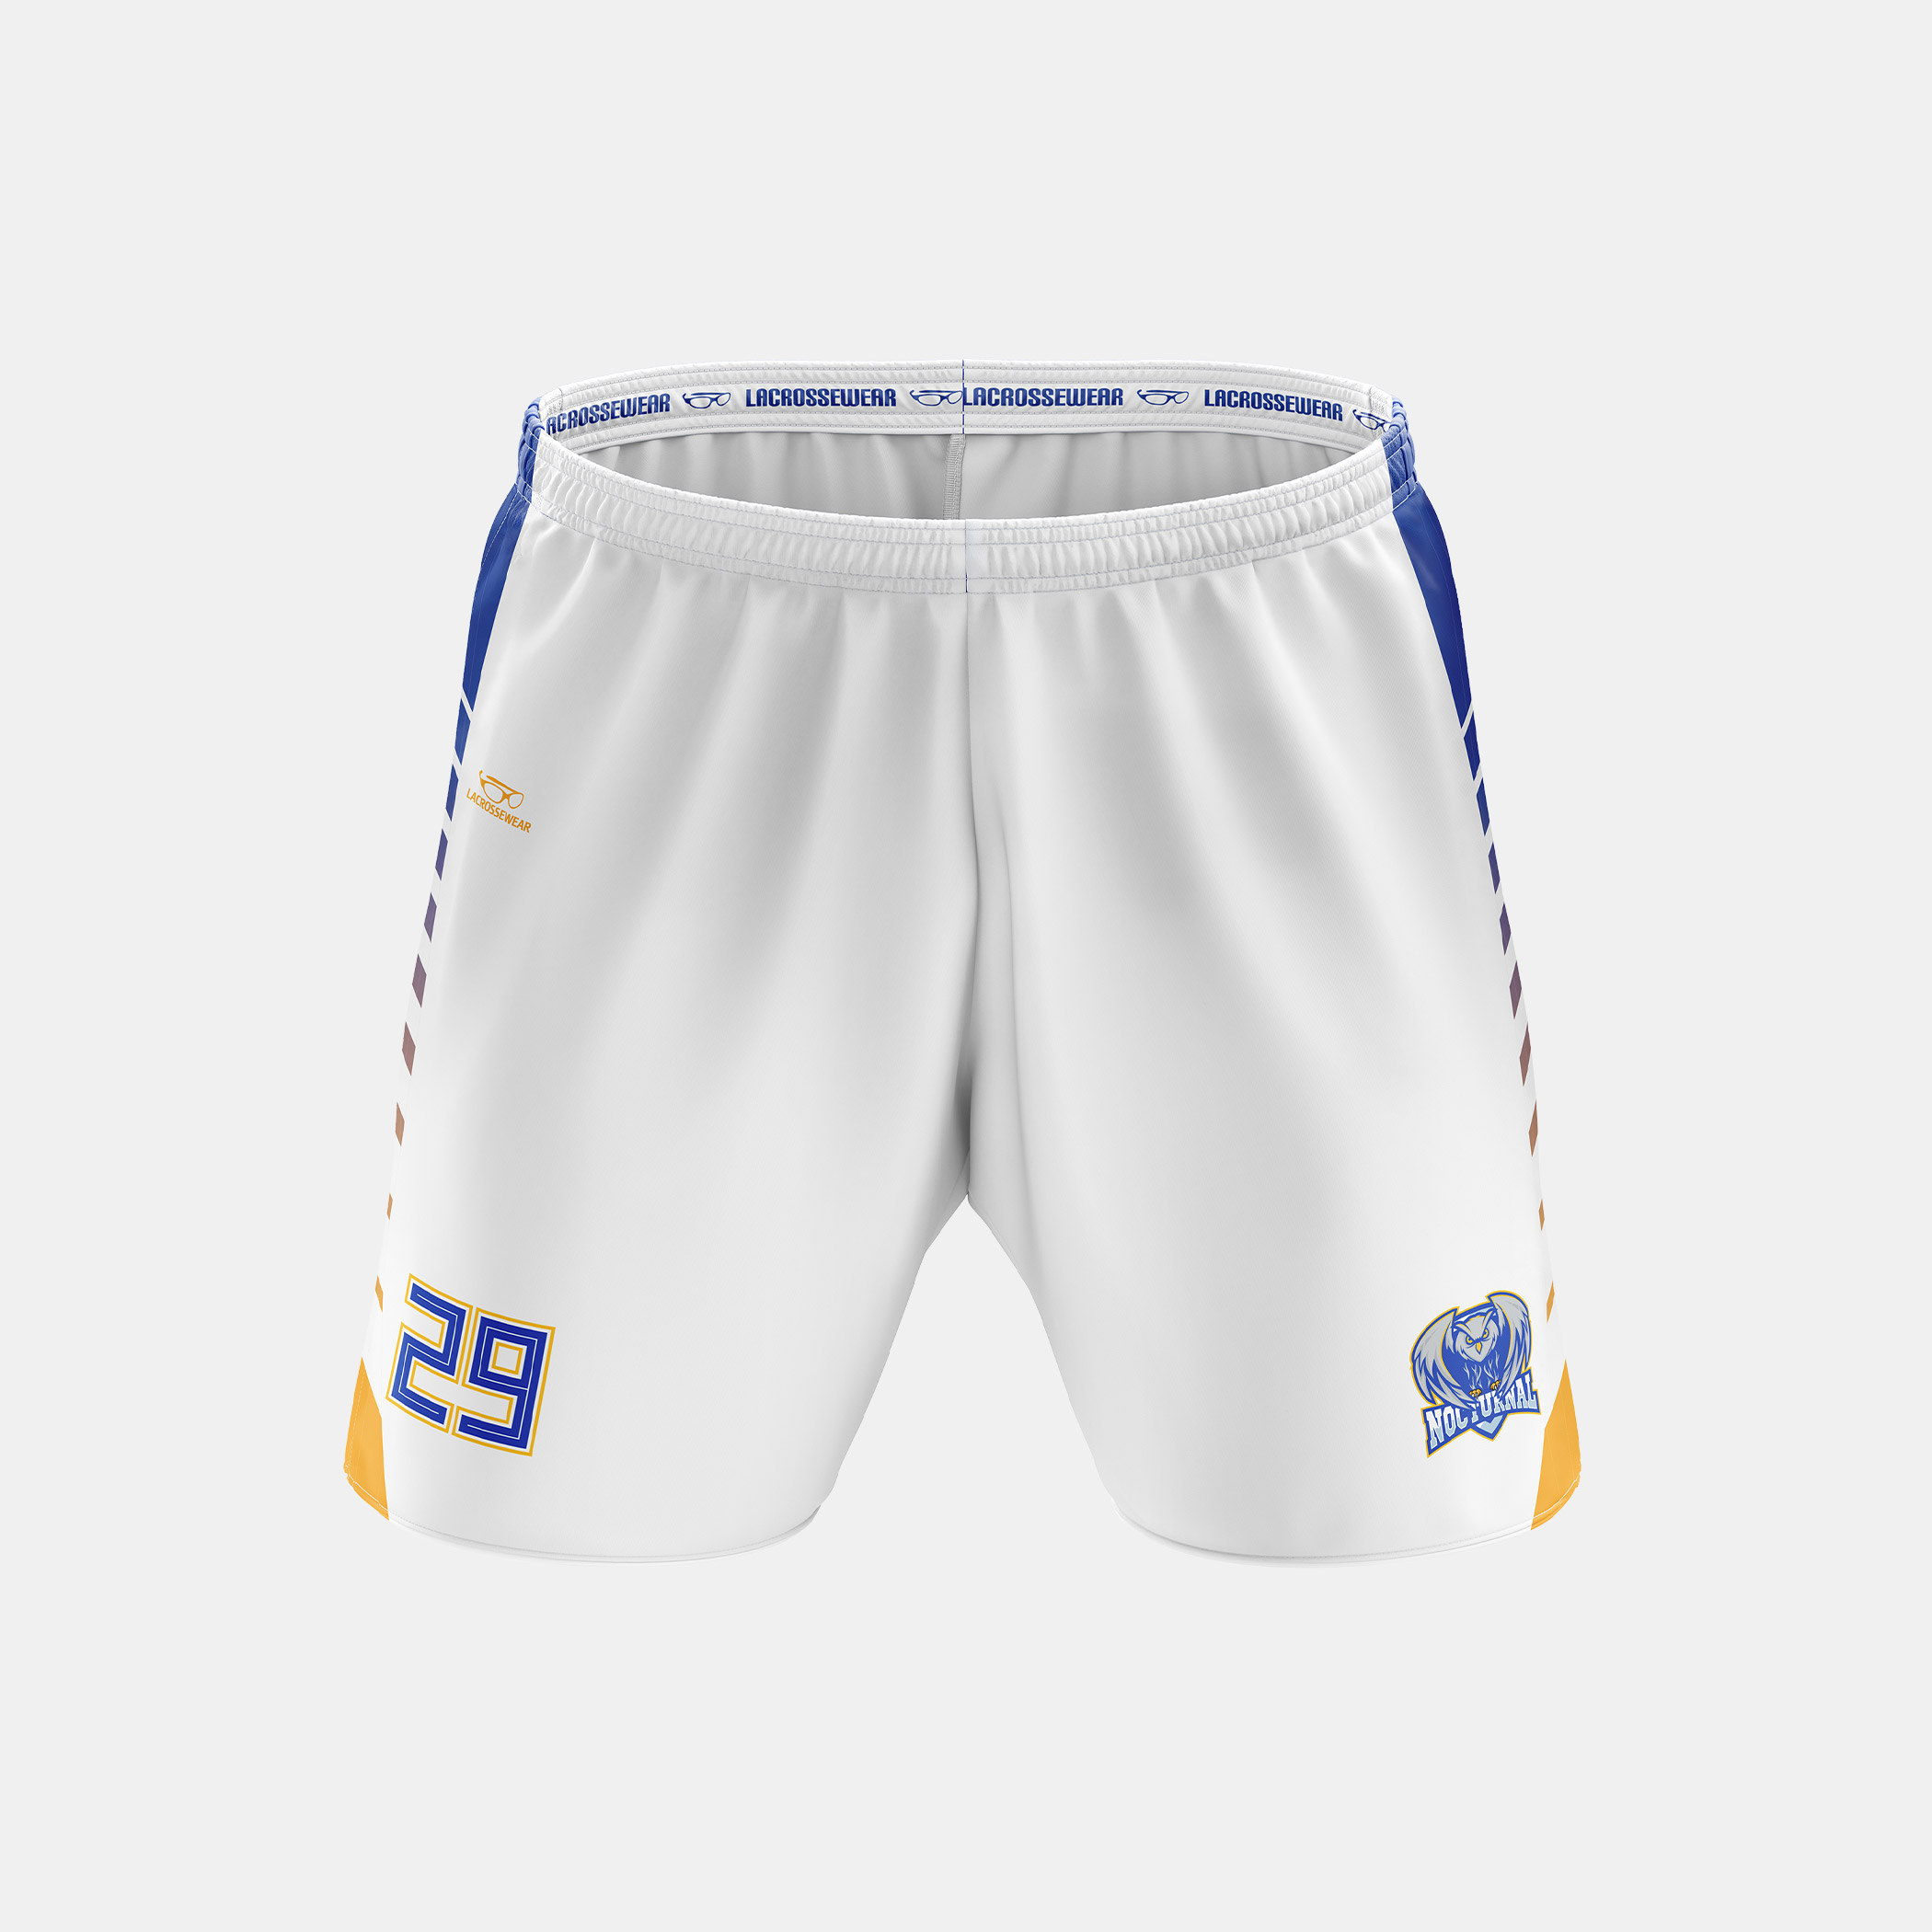 Nocturnal Shorts Front View